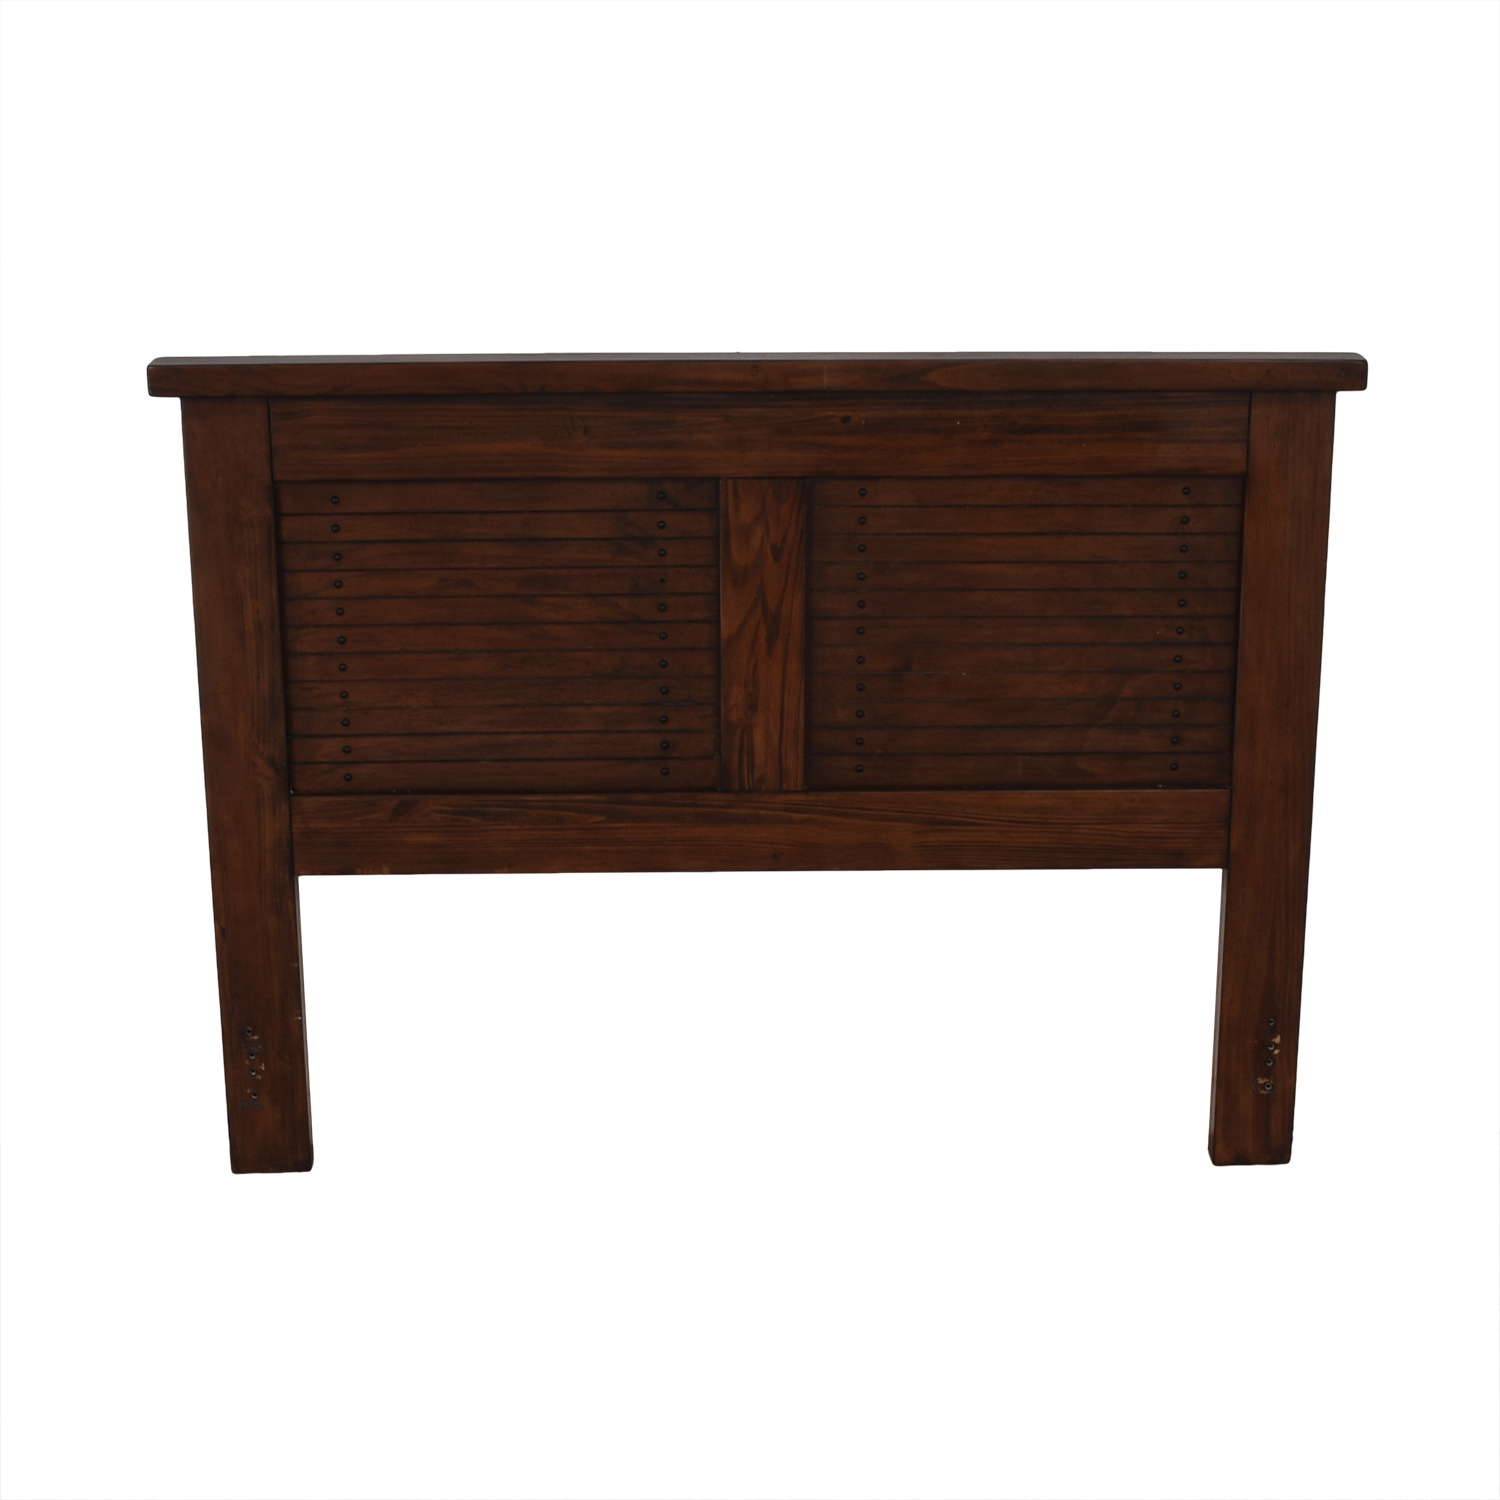 shop Pier 1 Pier 1 Queen Wood Headboard online